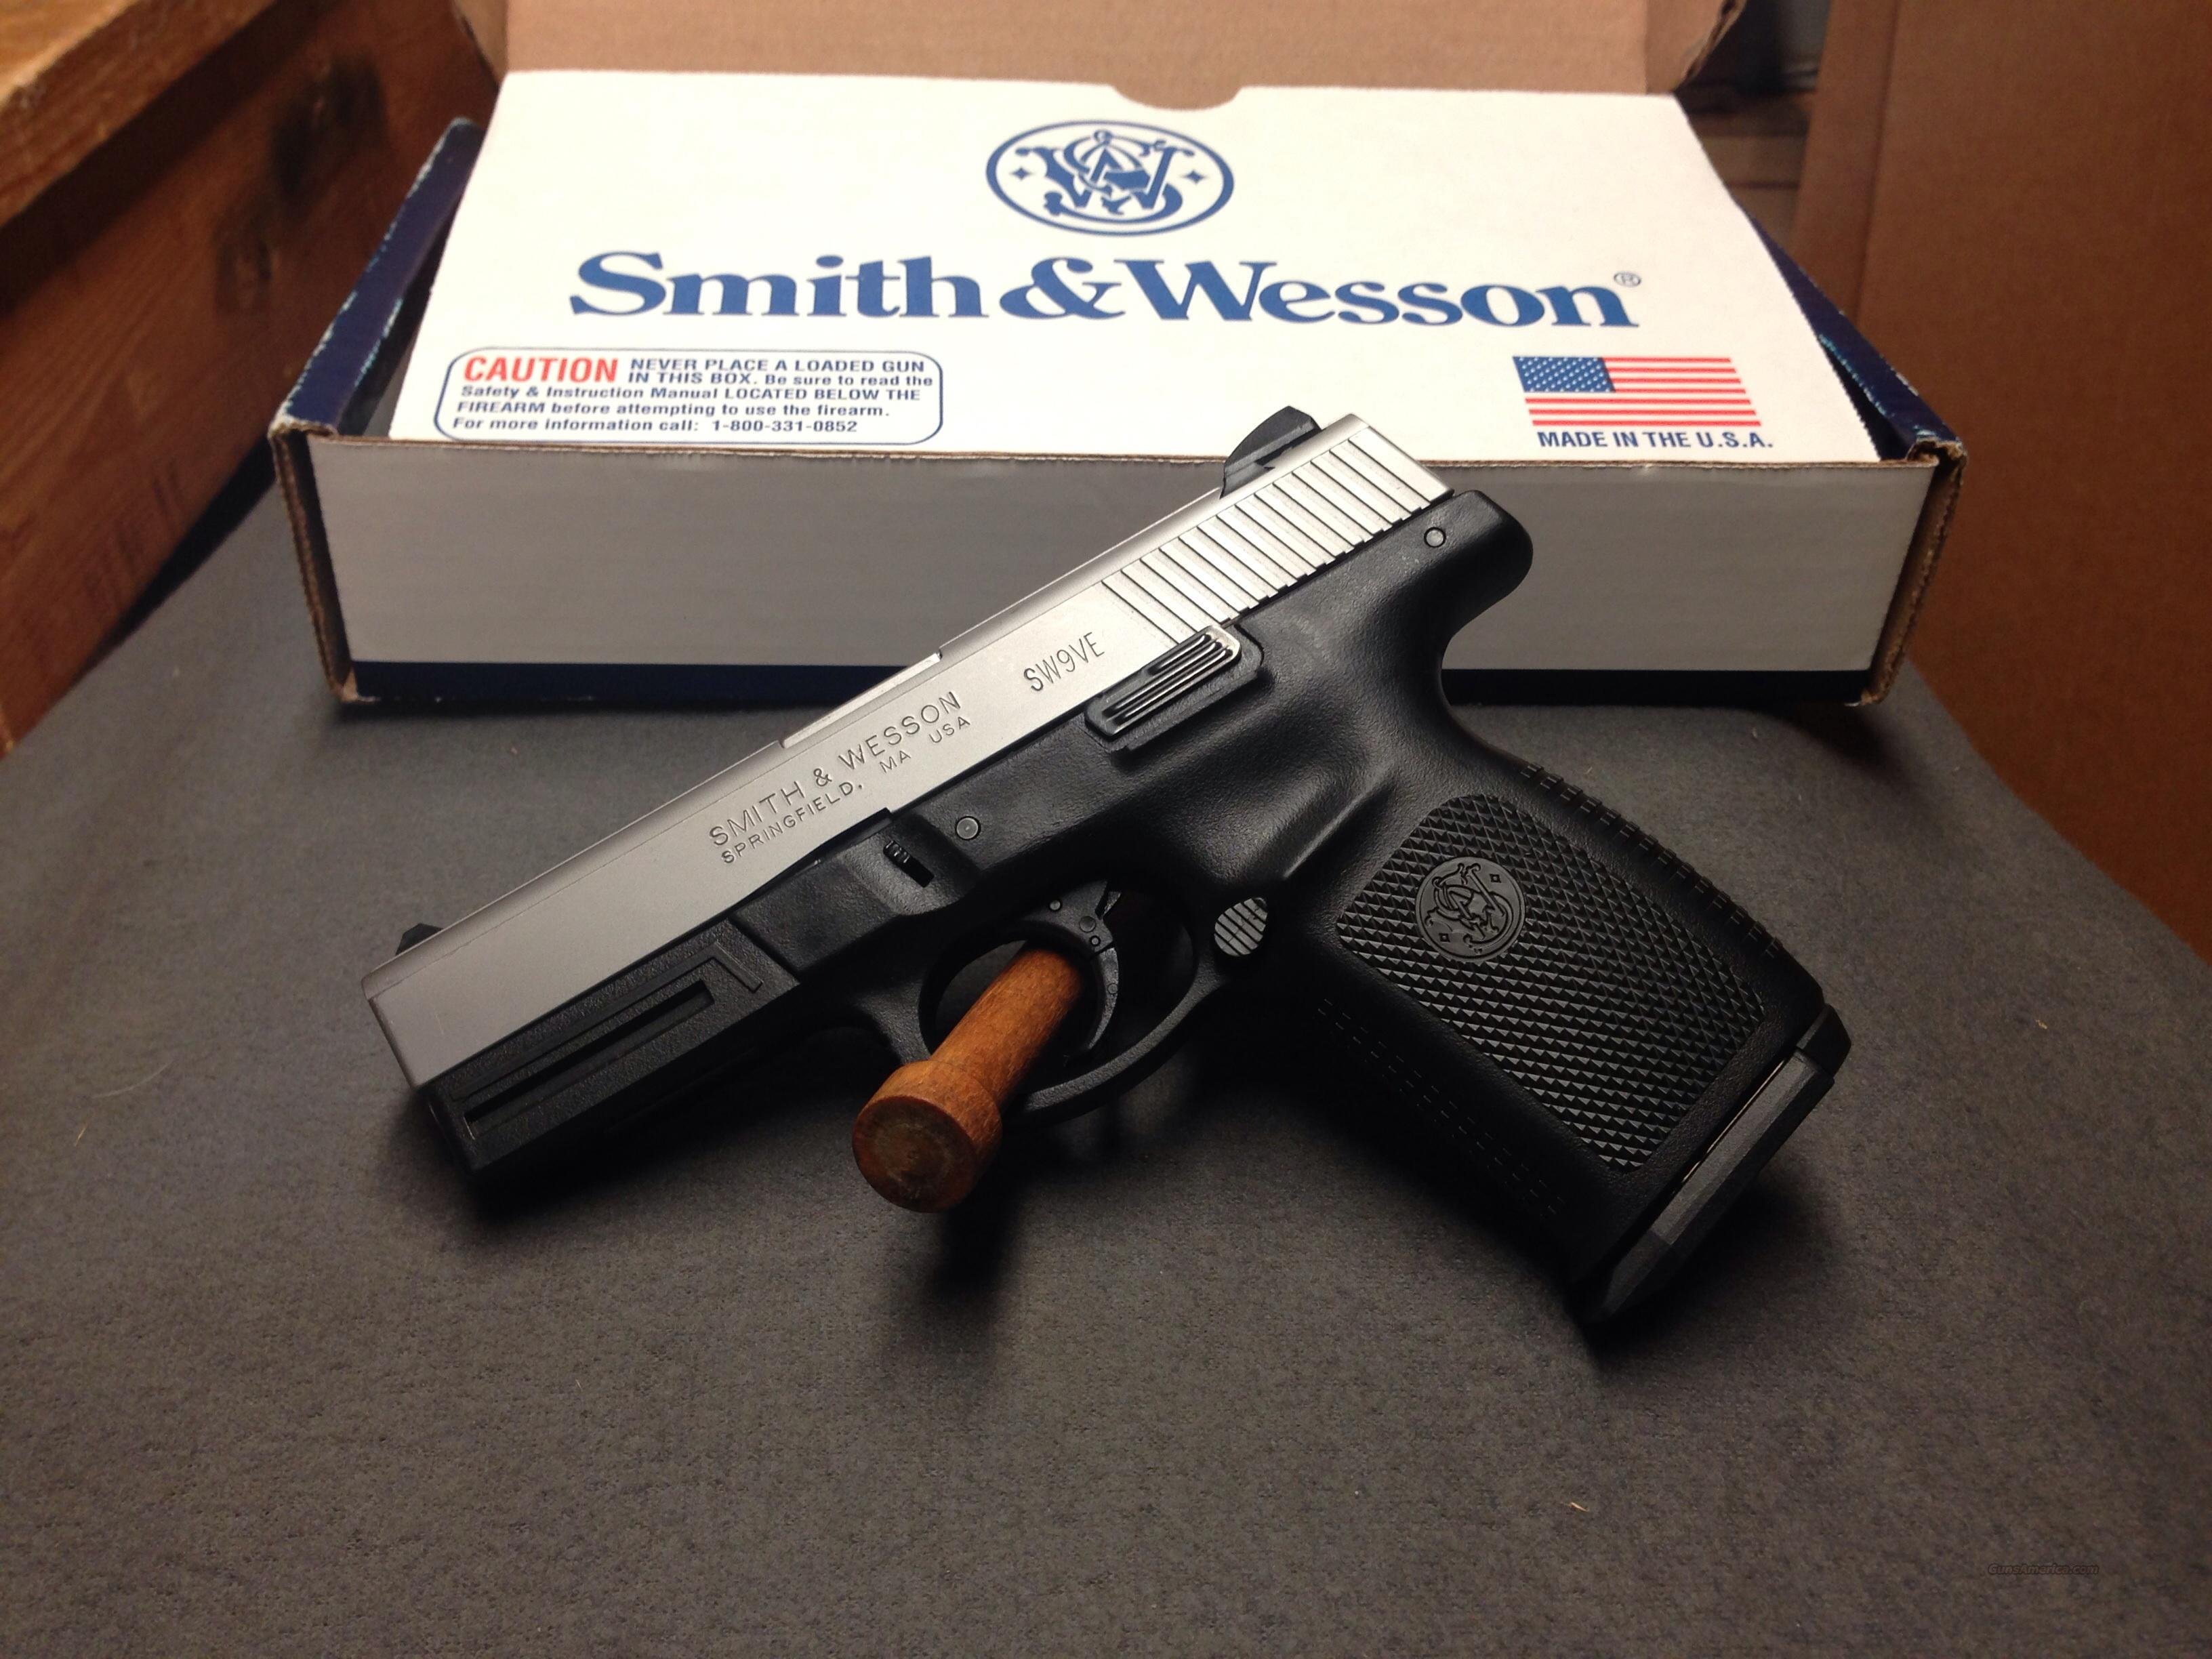 SMITH WESSON  SW9VE  (stainless)  Guns > Pistols > Smith & Wesson Pistols - Autos > Polymer Frame